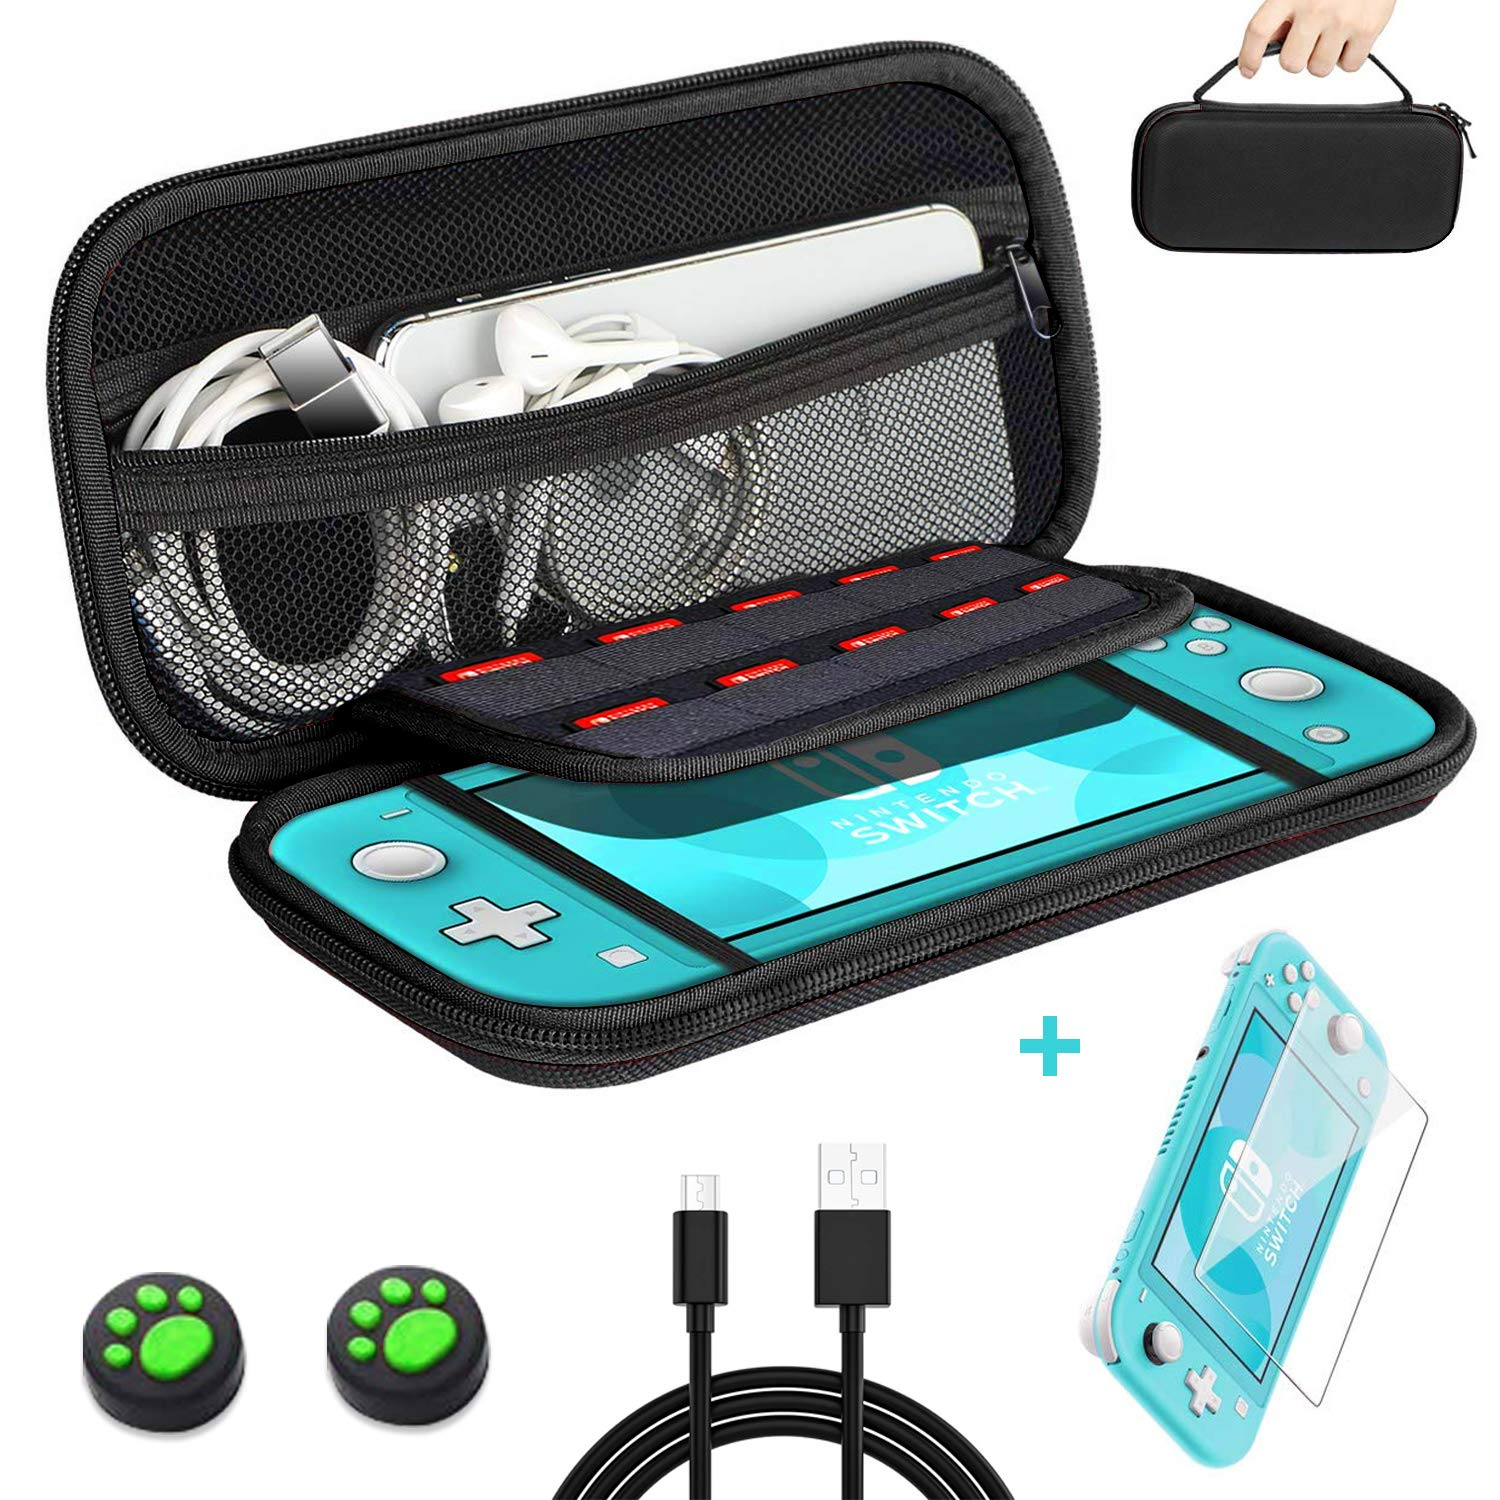 habbipet Nintendo Switch carying case with Glass Screen Protector,Hard Shell Pouch Switch Carrying case - USB C Cable & 2 Thumb Stick Caps -Black Color